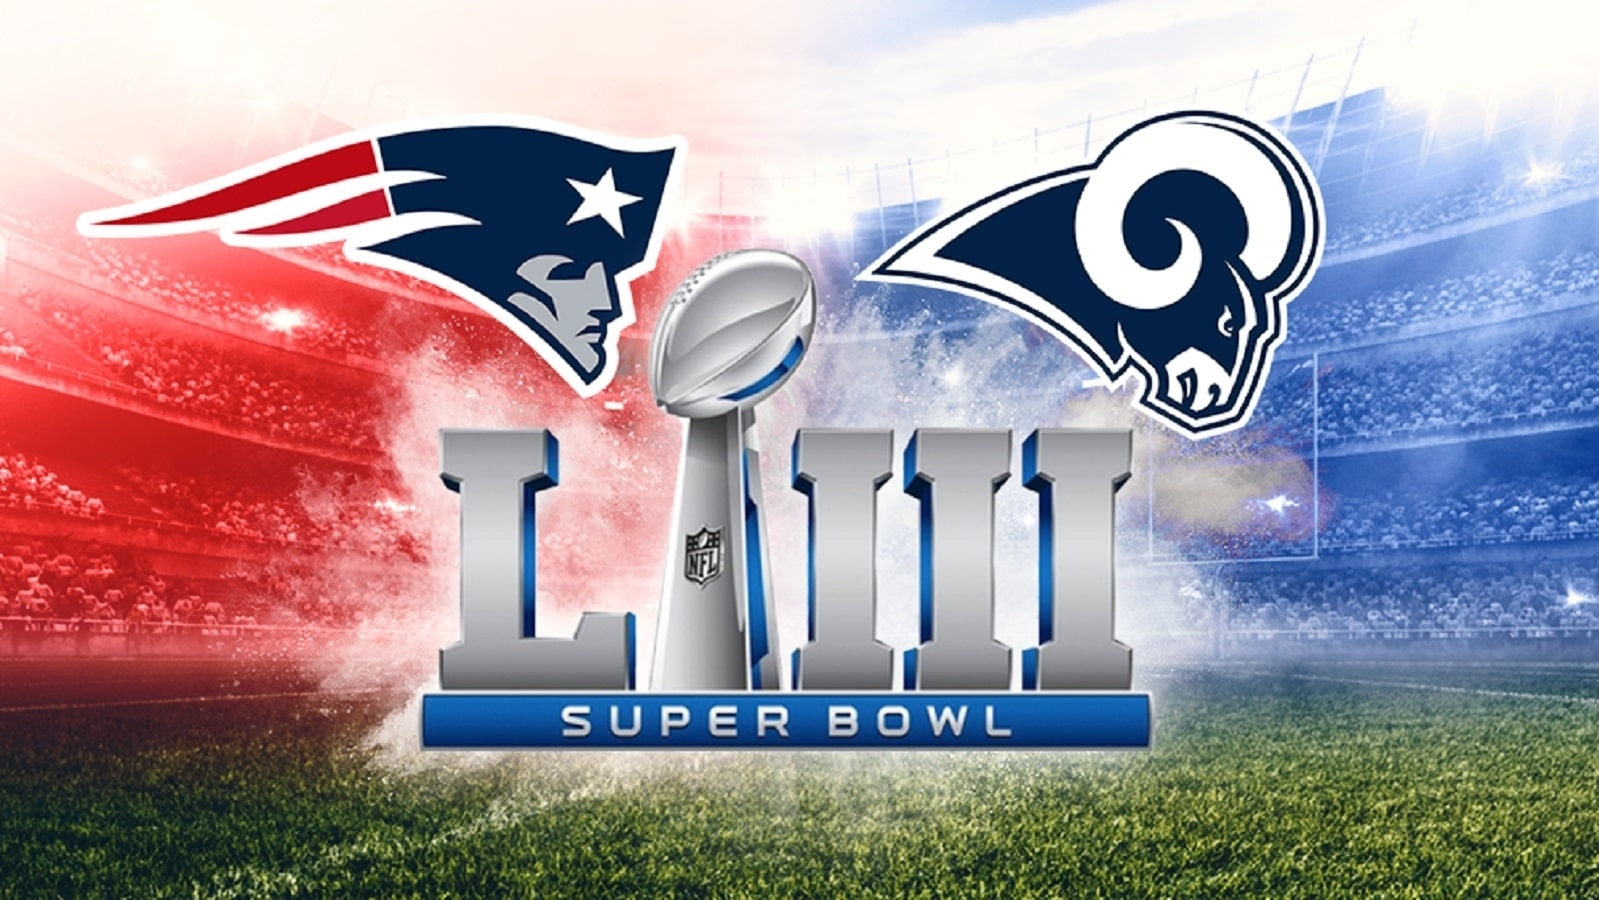 How To Stream Super Bowl Liii Online For Free In February 2019 regarding Super Bowl 2019 Online